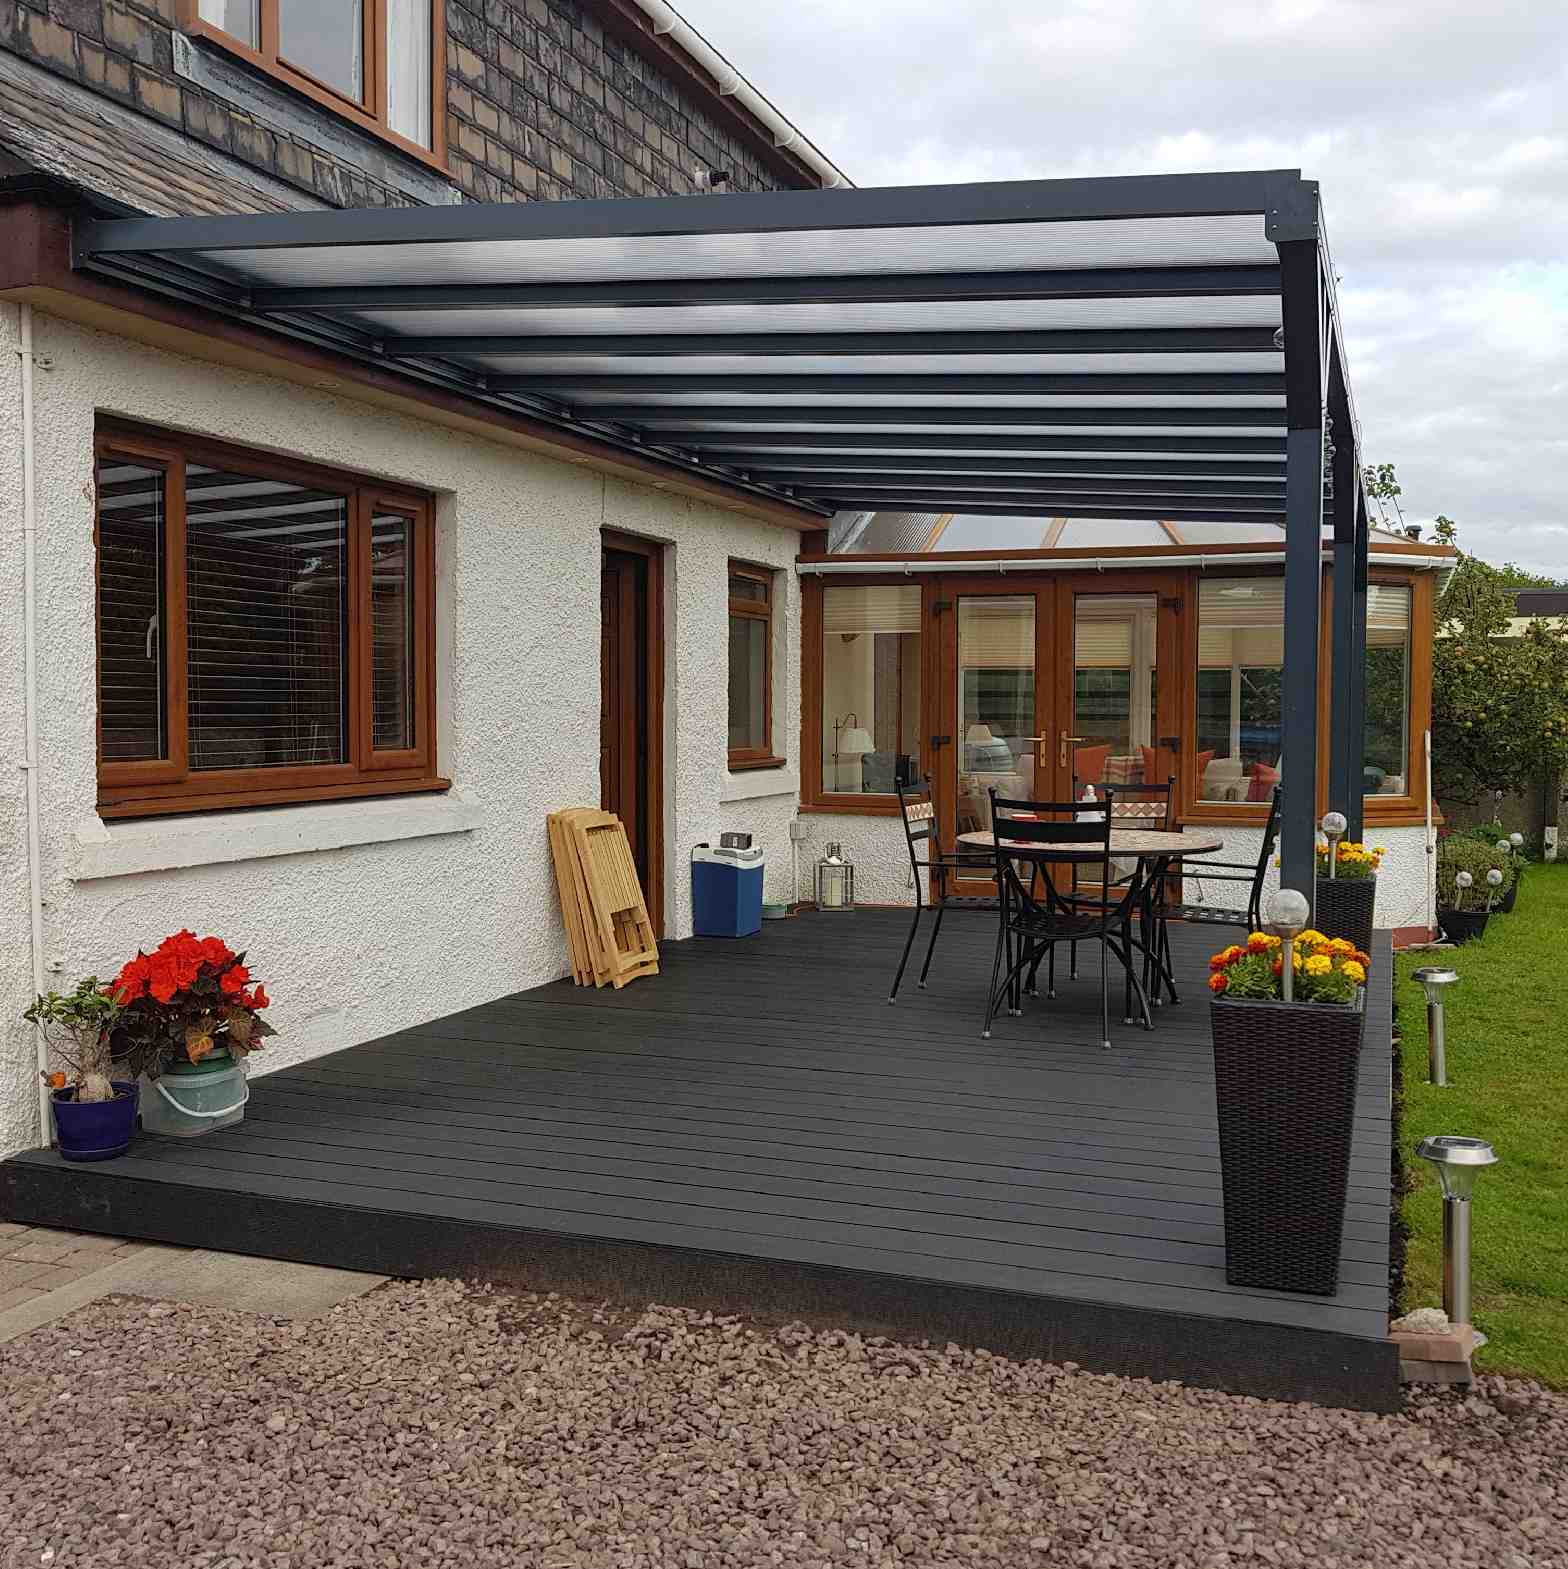 Buy Omega Verandah, Anthracite Grey, 16mm Polycarbonate Glazing - 3.5m (W) x 3.5m (P), (3) Supporting Posts online today